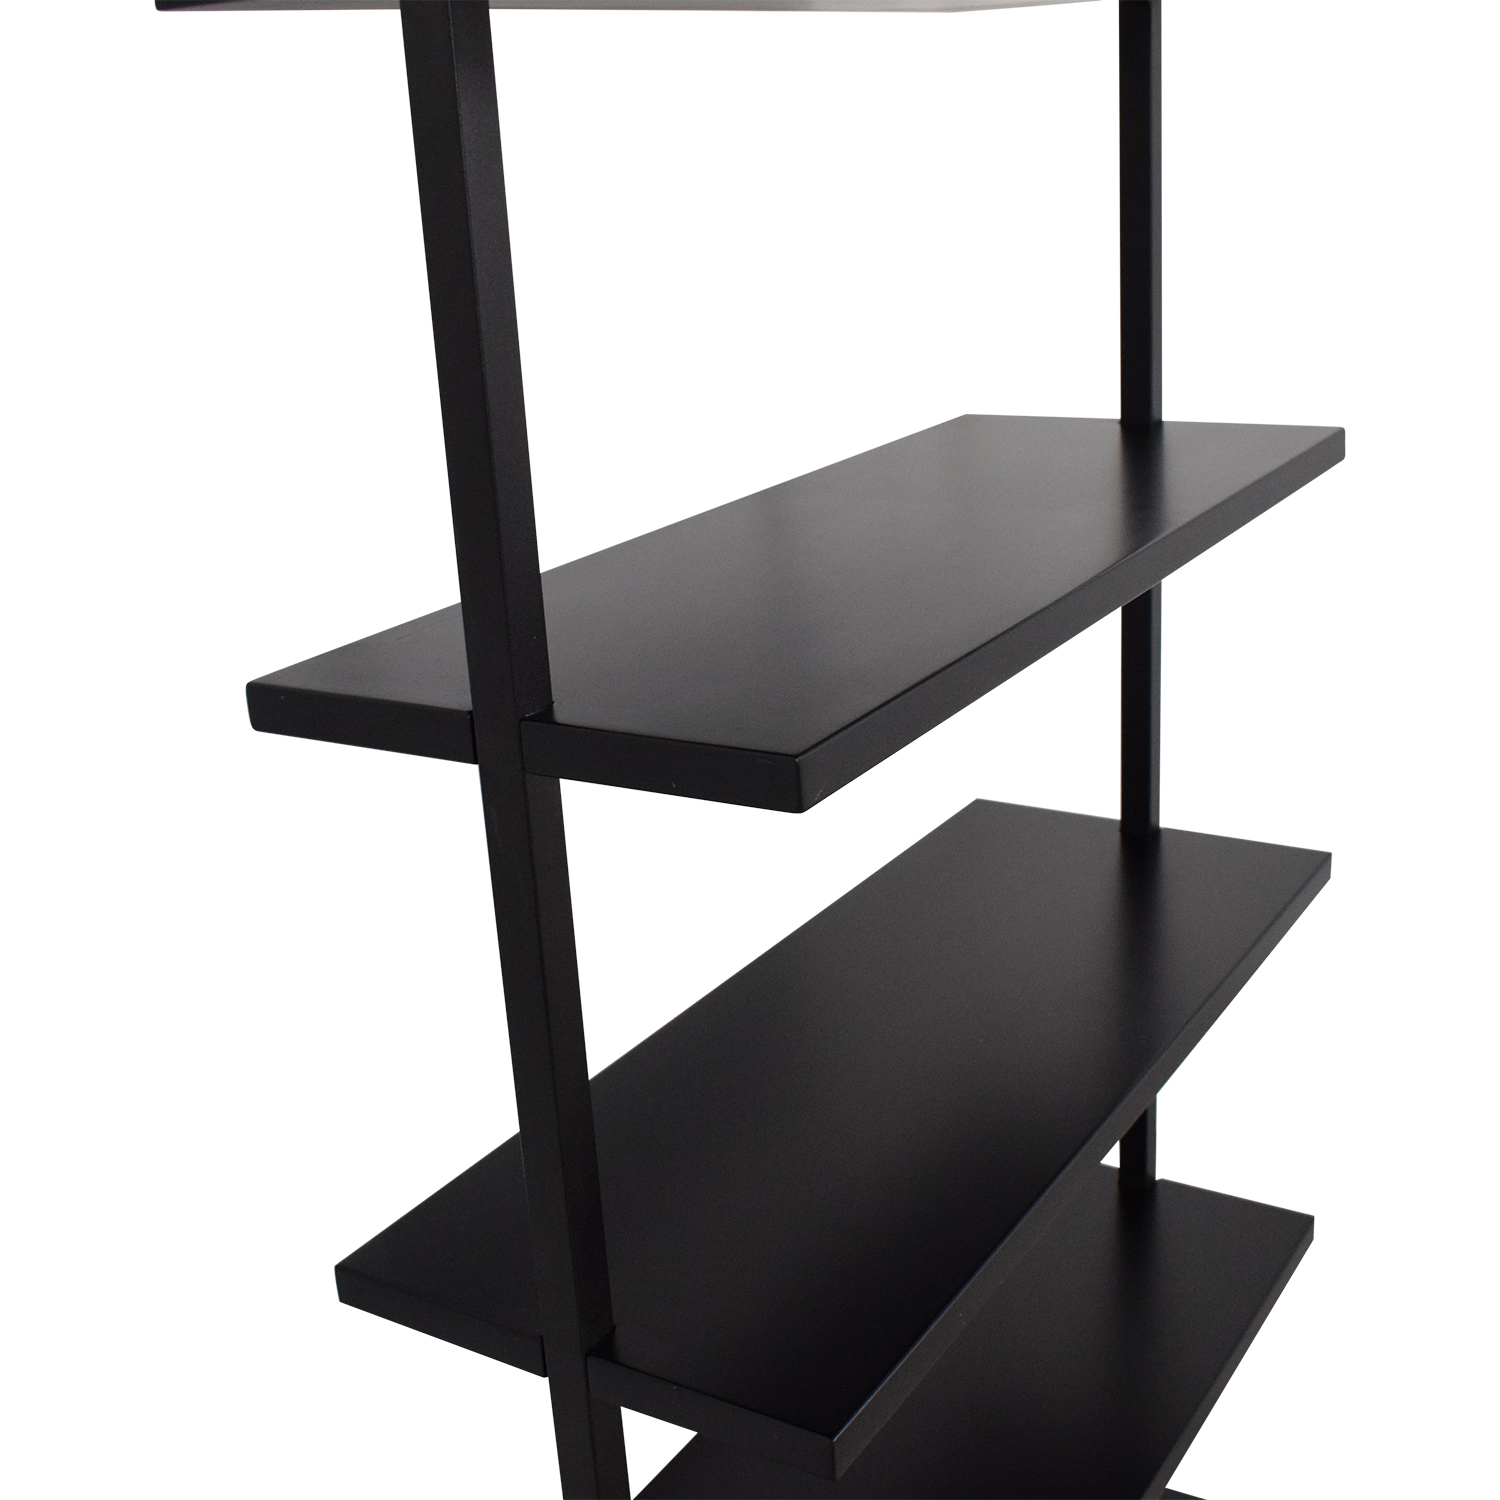 CB2 CB2 Stairway Wall Mounted Bookcase used